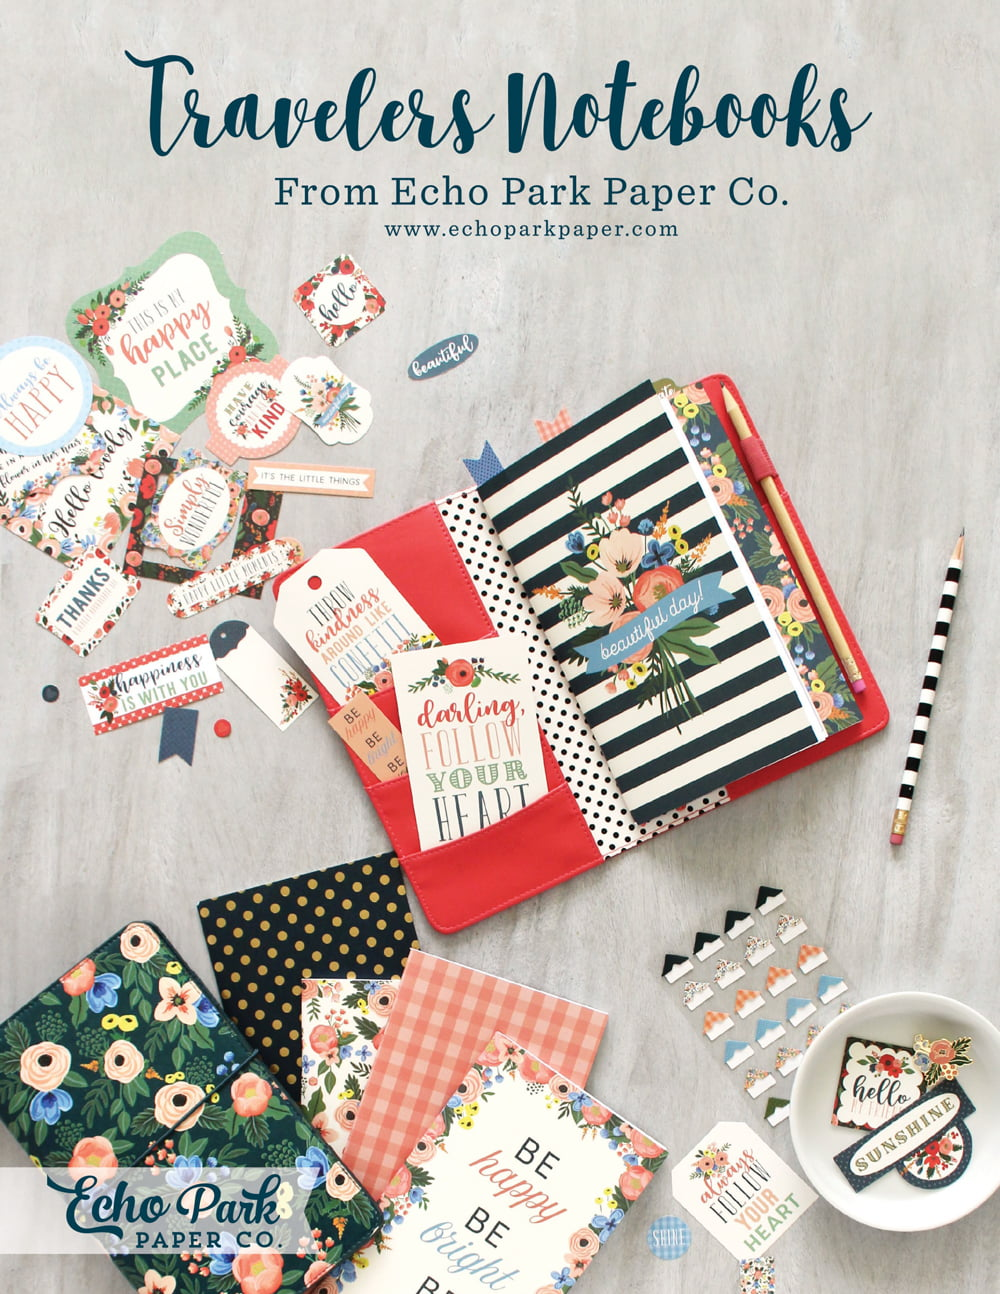 Echo Park Paper Ad - Scrapbook & Cards Today Summer 2018 Issue